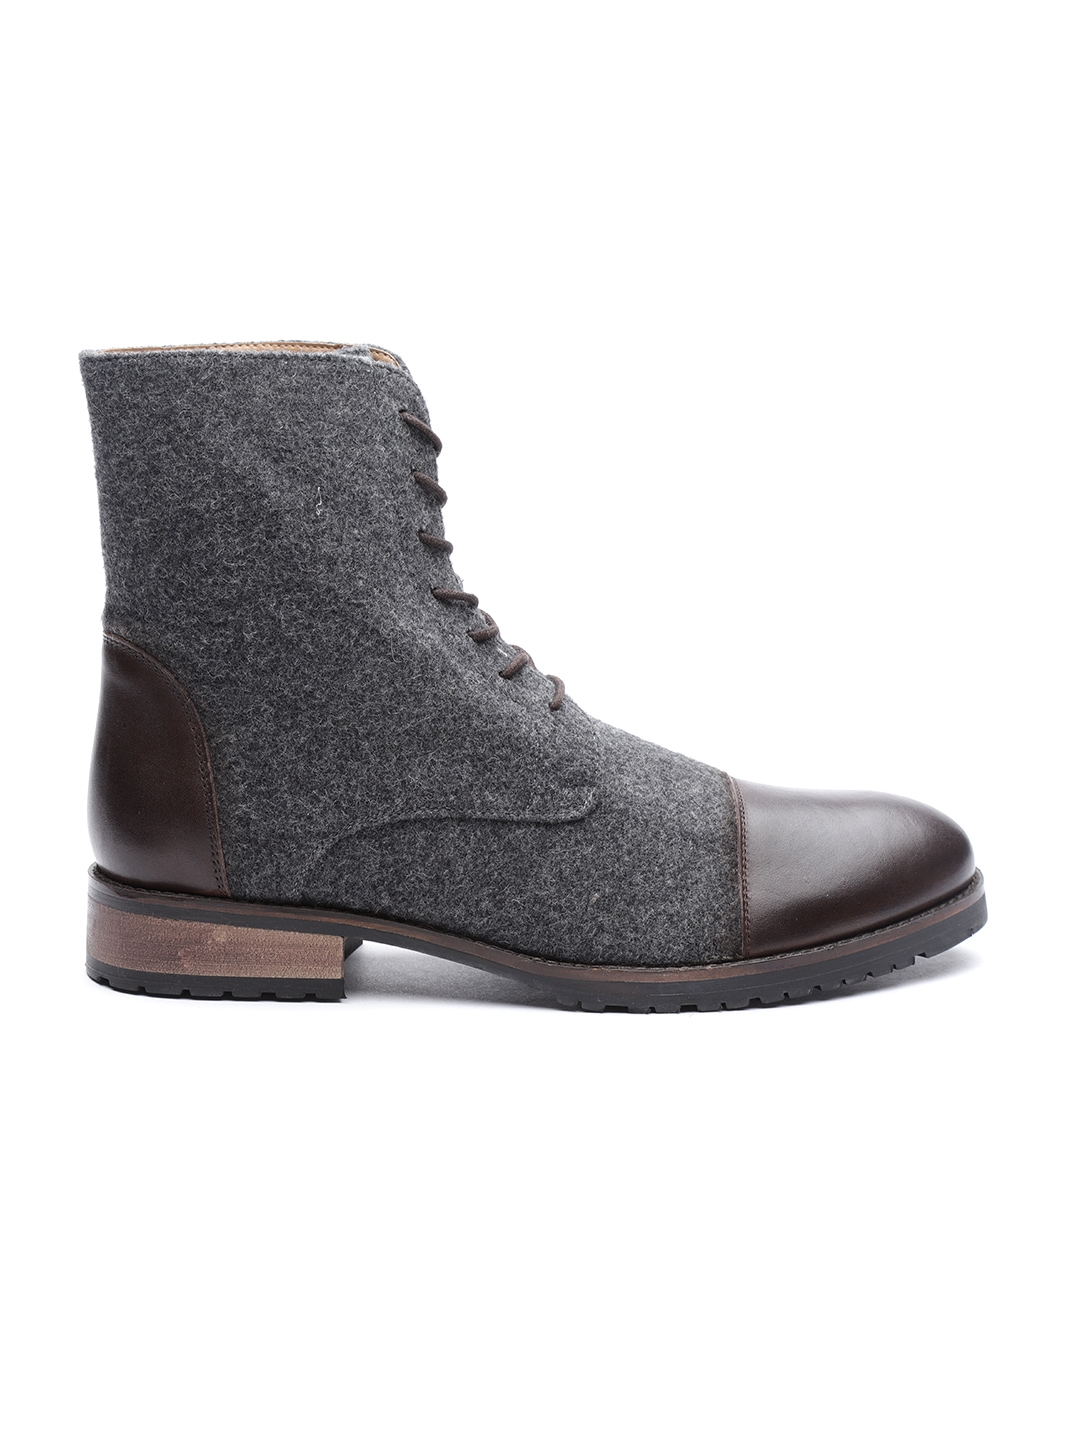 11599b6970d Buy Carlton London Men Charcoal Grey Flat Boots - Casual Shoes for ...